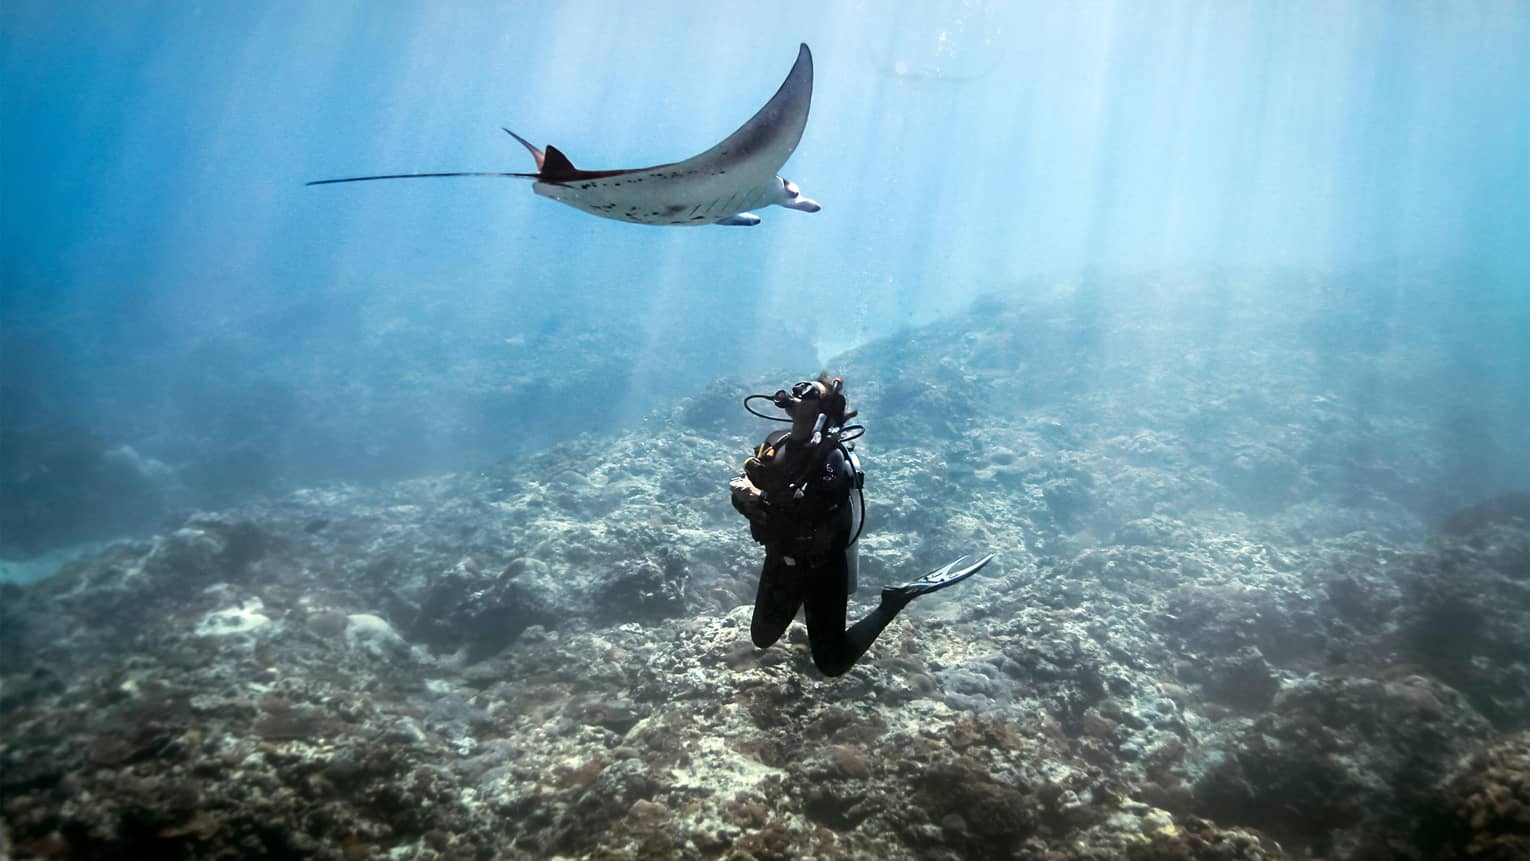 Scuba diver underwater above coral reef, looking up at manta ray